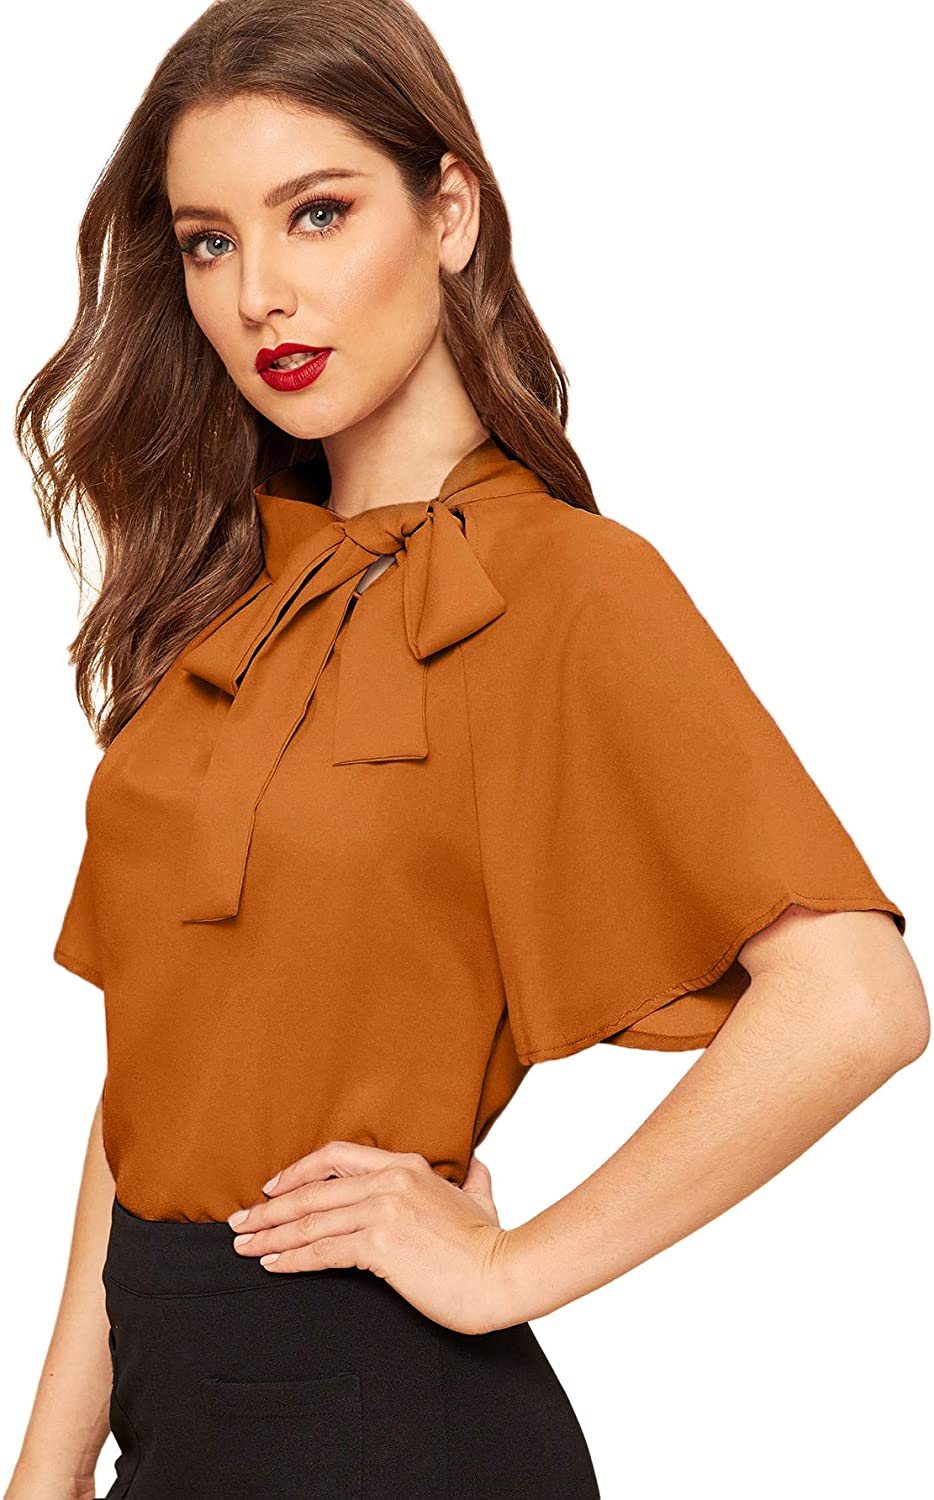 B07RM2J4RS SheIn Women's Casual Side Bow Tie Neck Short Sleeve Blouse Shirt Top 71jL5A2-KSL